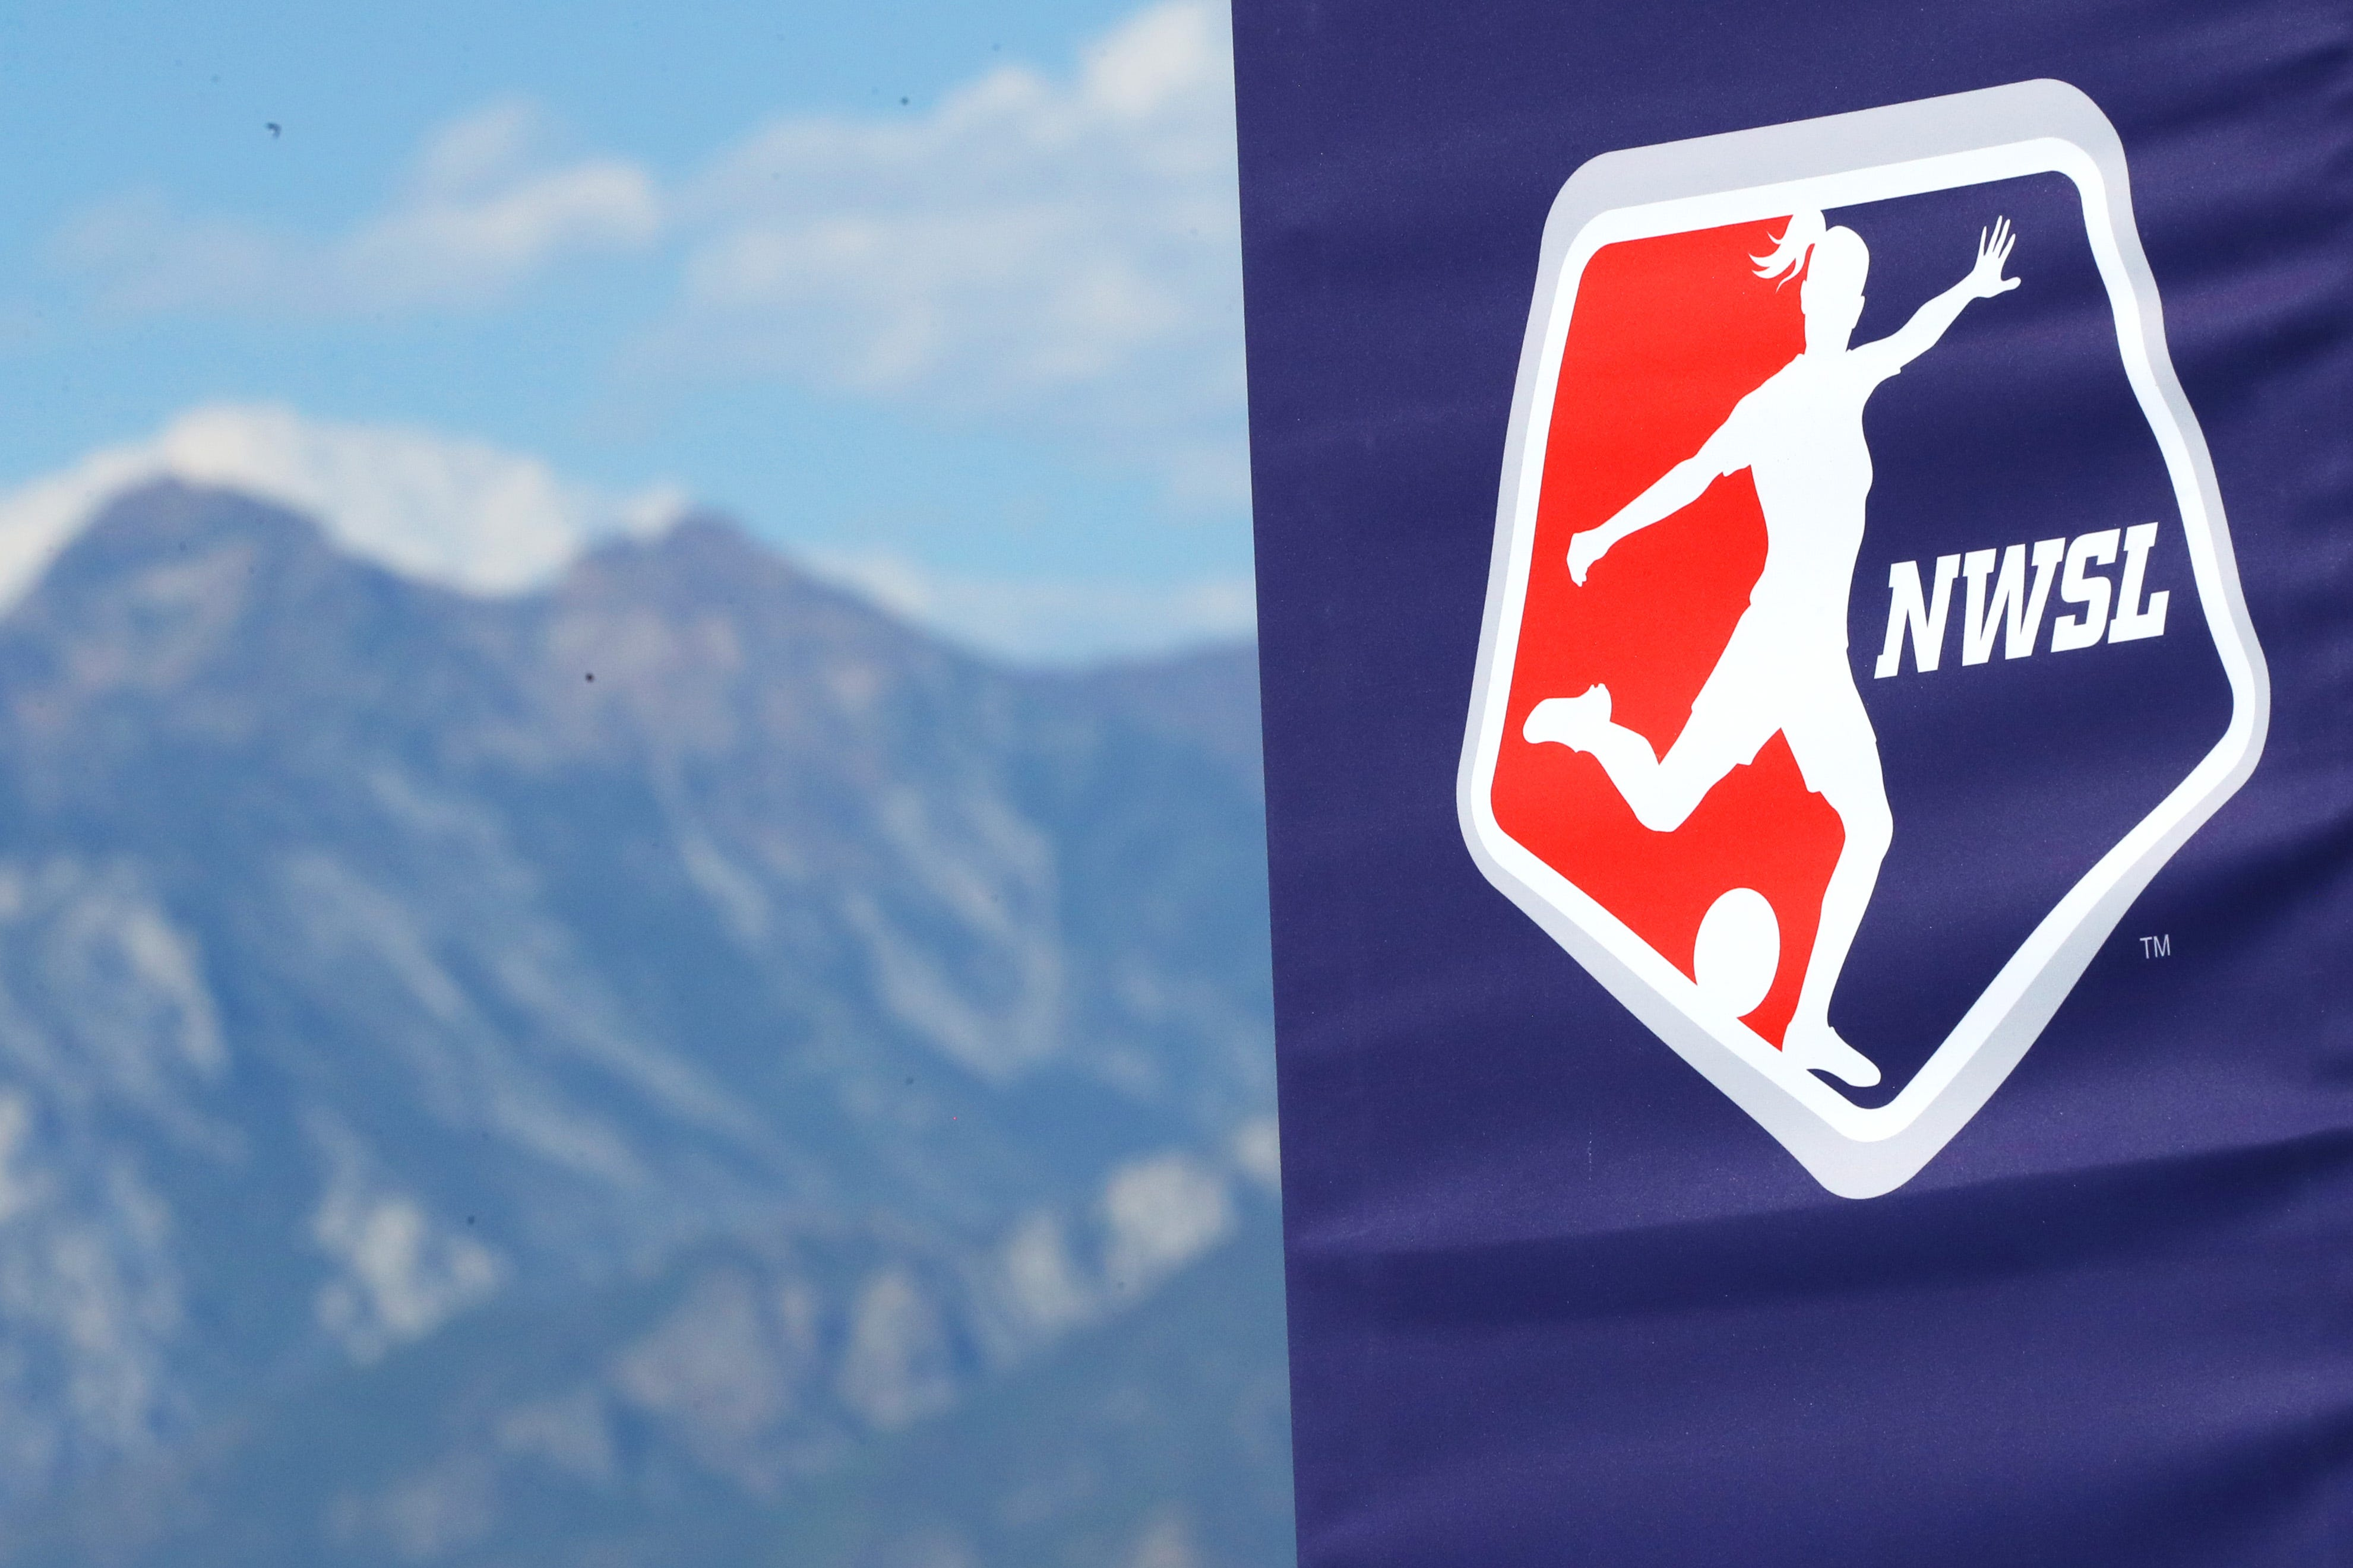 NWSL commissioner Lisa Baird out as fallout over sexual coercion scandal continues